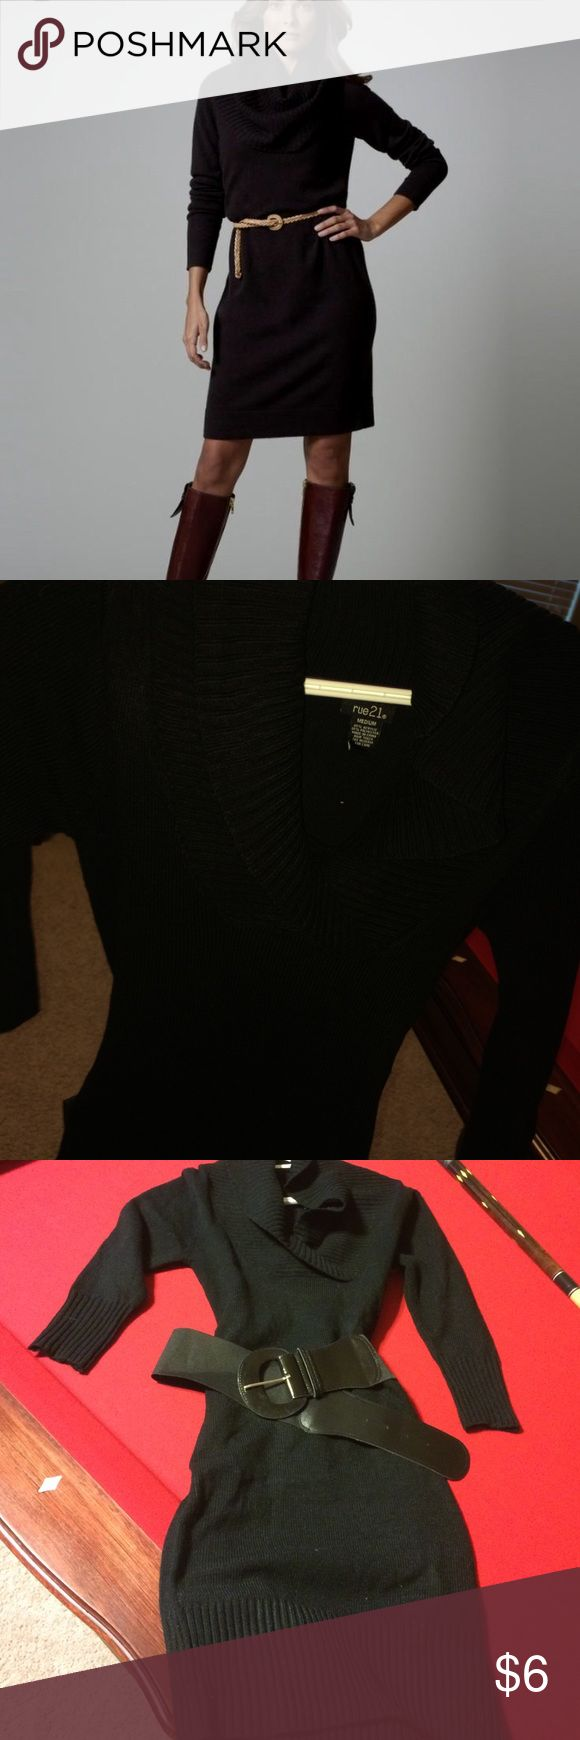 Sweater dress Perfect condition black sweater dress! Perfect for winter. Belt comes with it:) size small Rue 21 Dresses